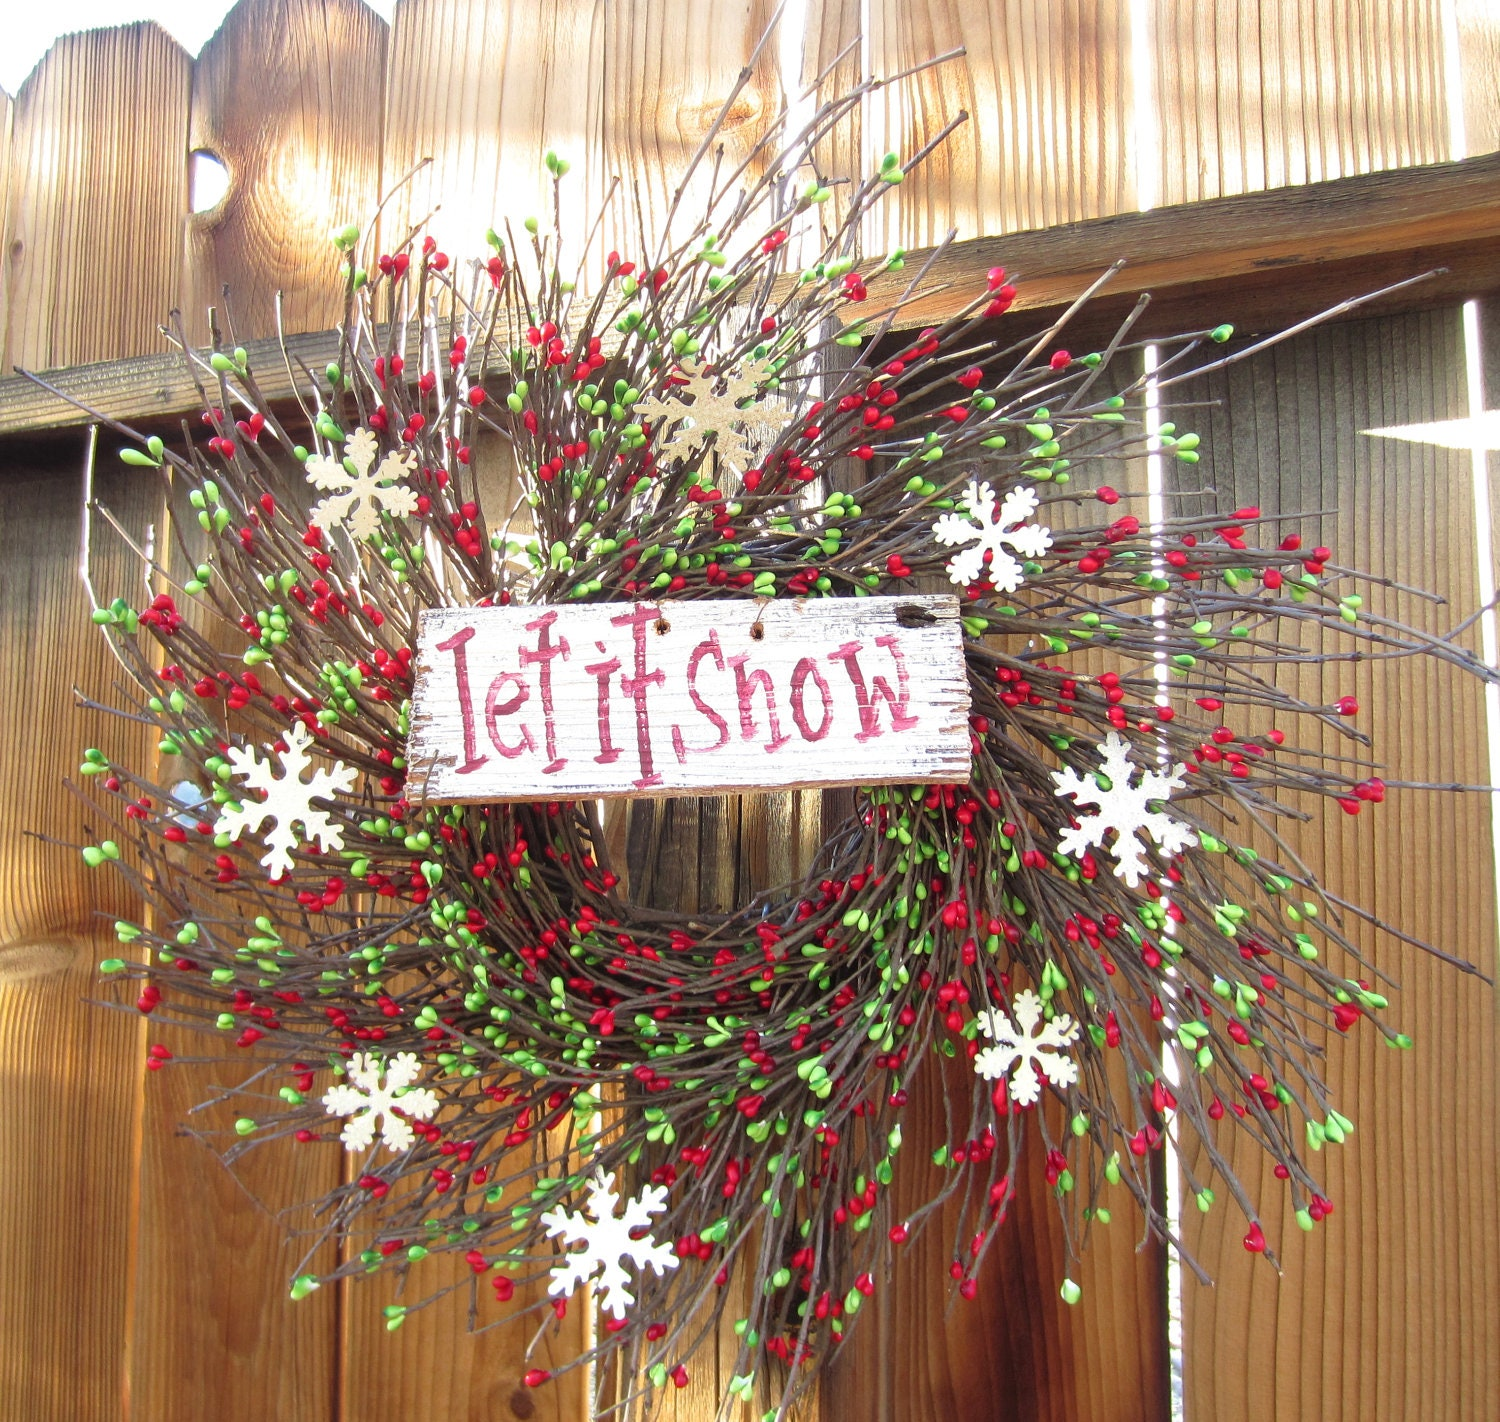 Christmas Door Frame Decorations: Let It Snow Winter Wreath Door Decor For Your Holiday Front